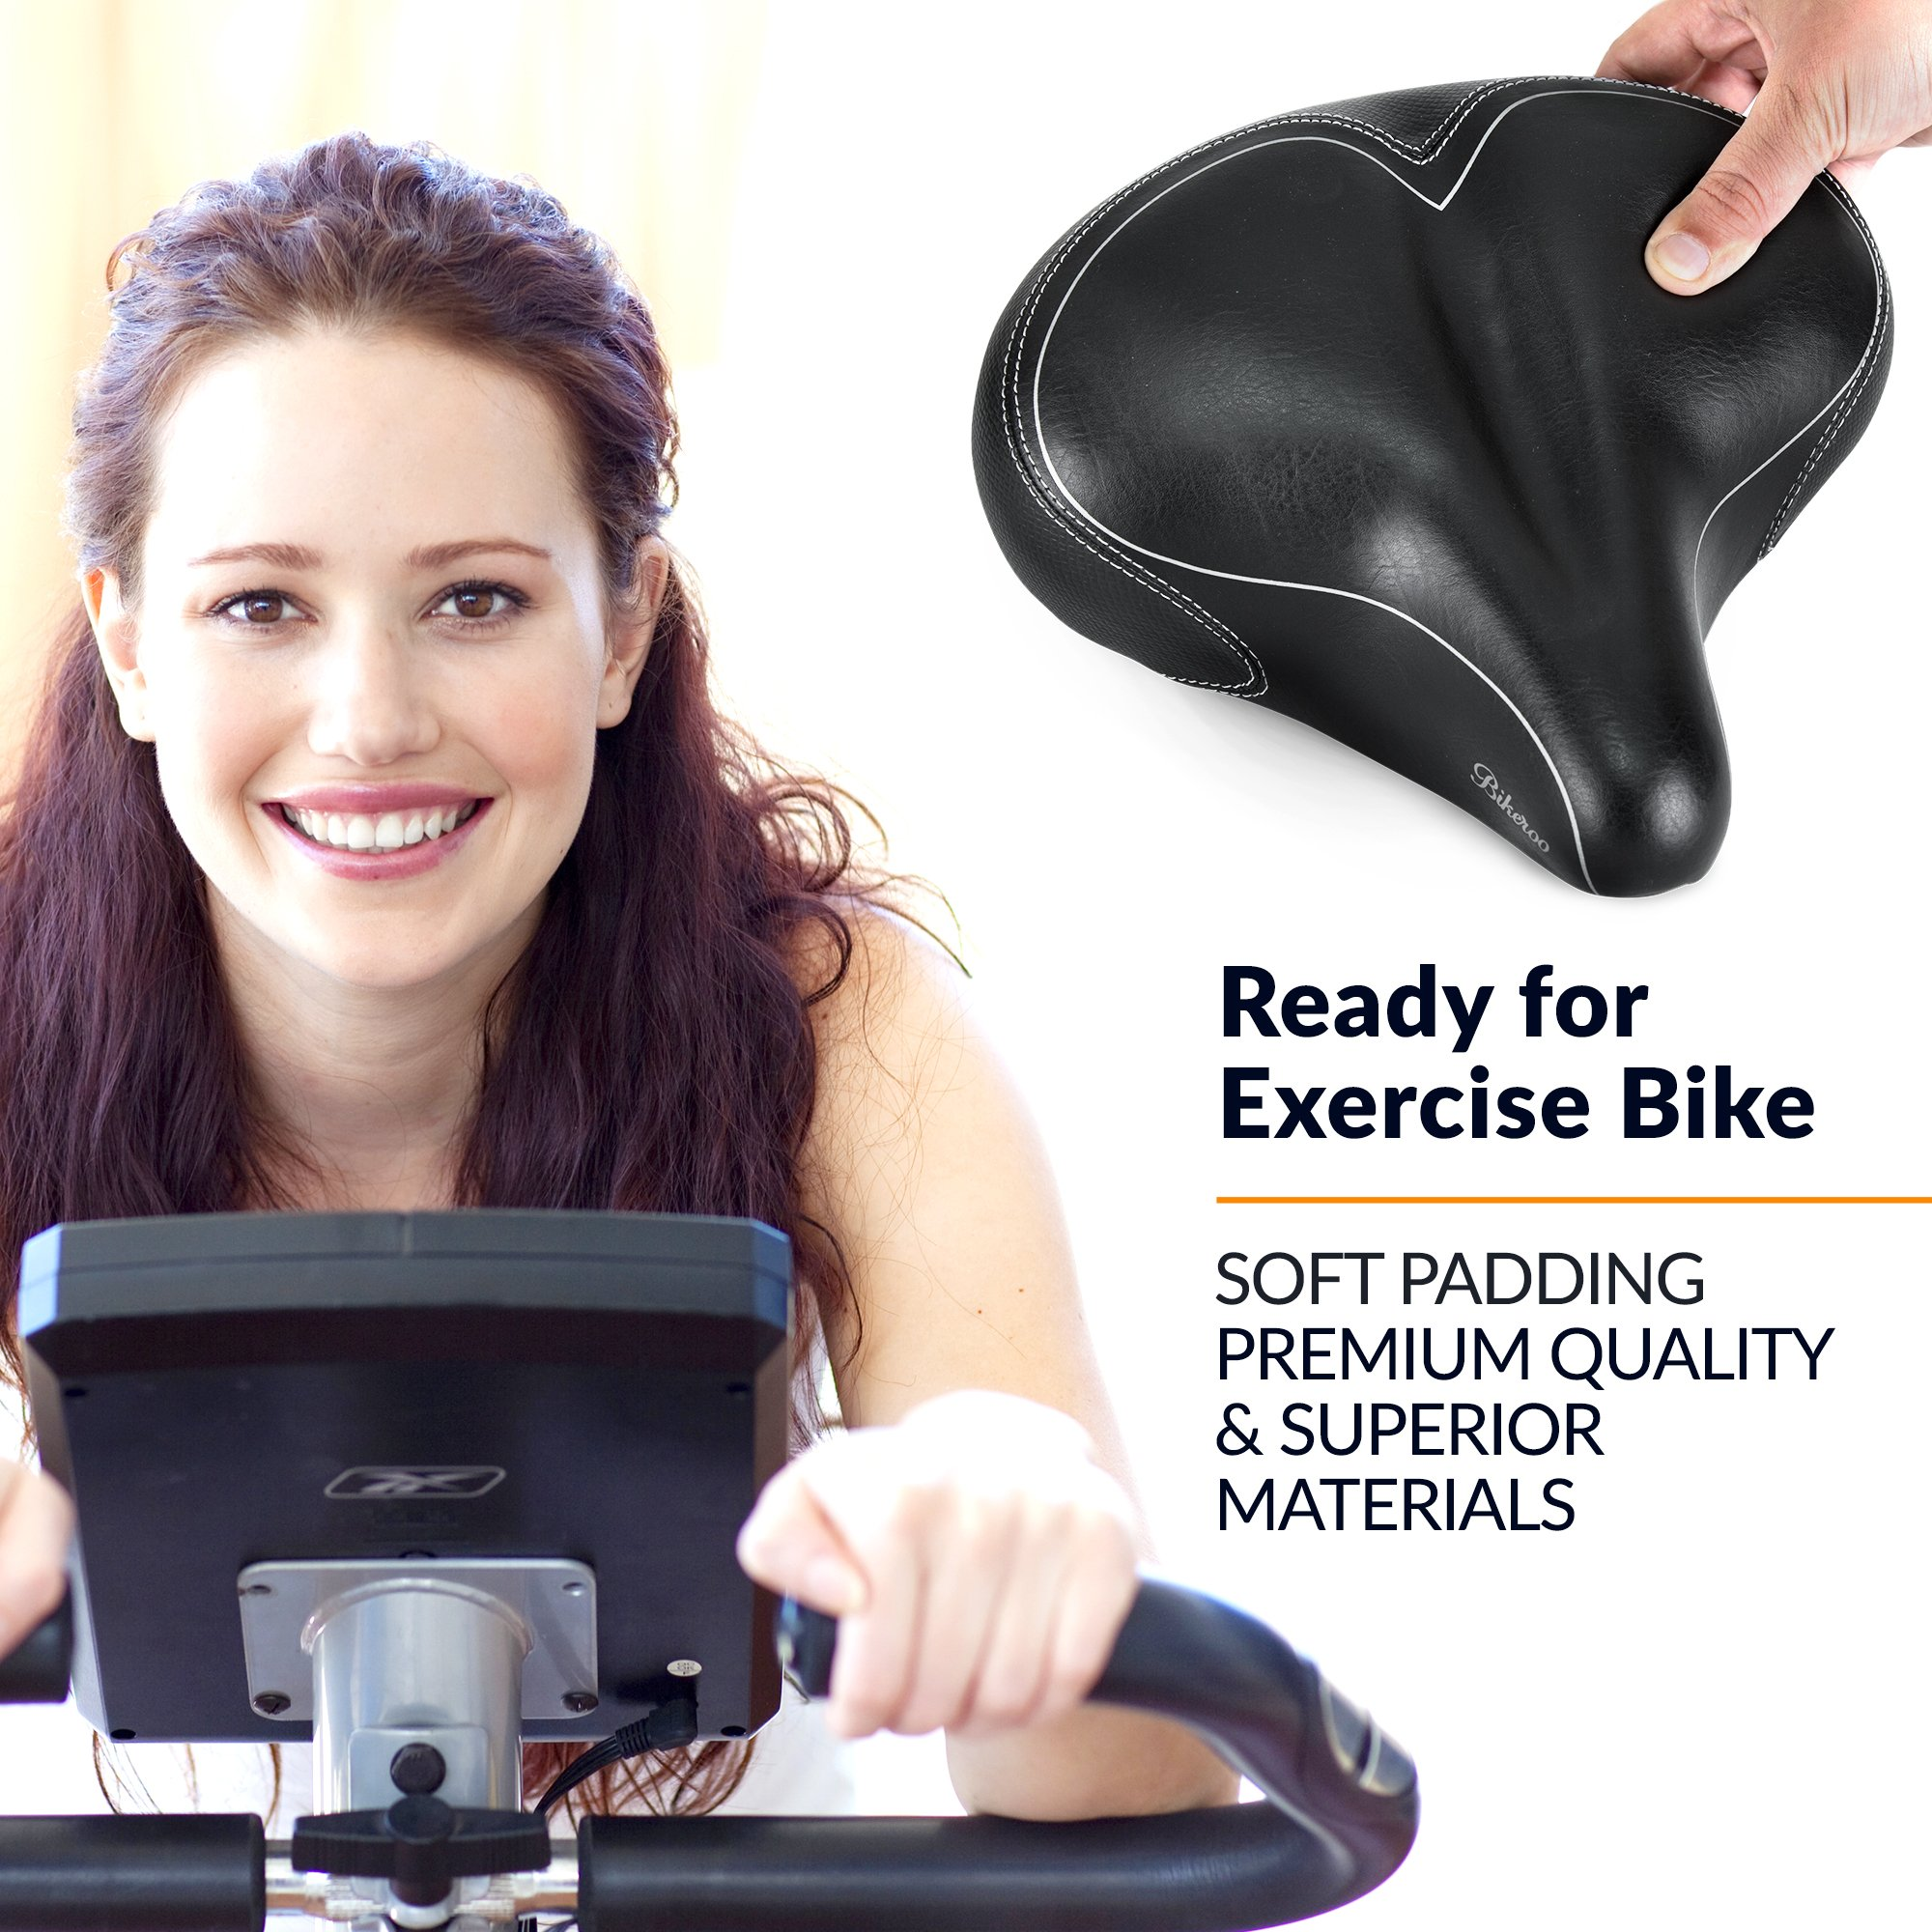 Bikeroo Oversized Comfort Bike Seat Most Comfortable Replacement Bicycle Saddle - Universal Fit for Exercise Bike and Outdoor Bikes - Wide Soft Padded Bike Saddle for Women and Men by Bikeroo (Image #8)